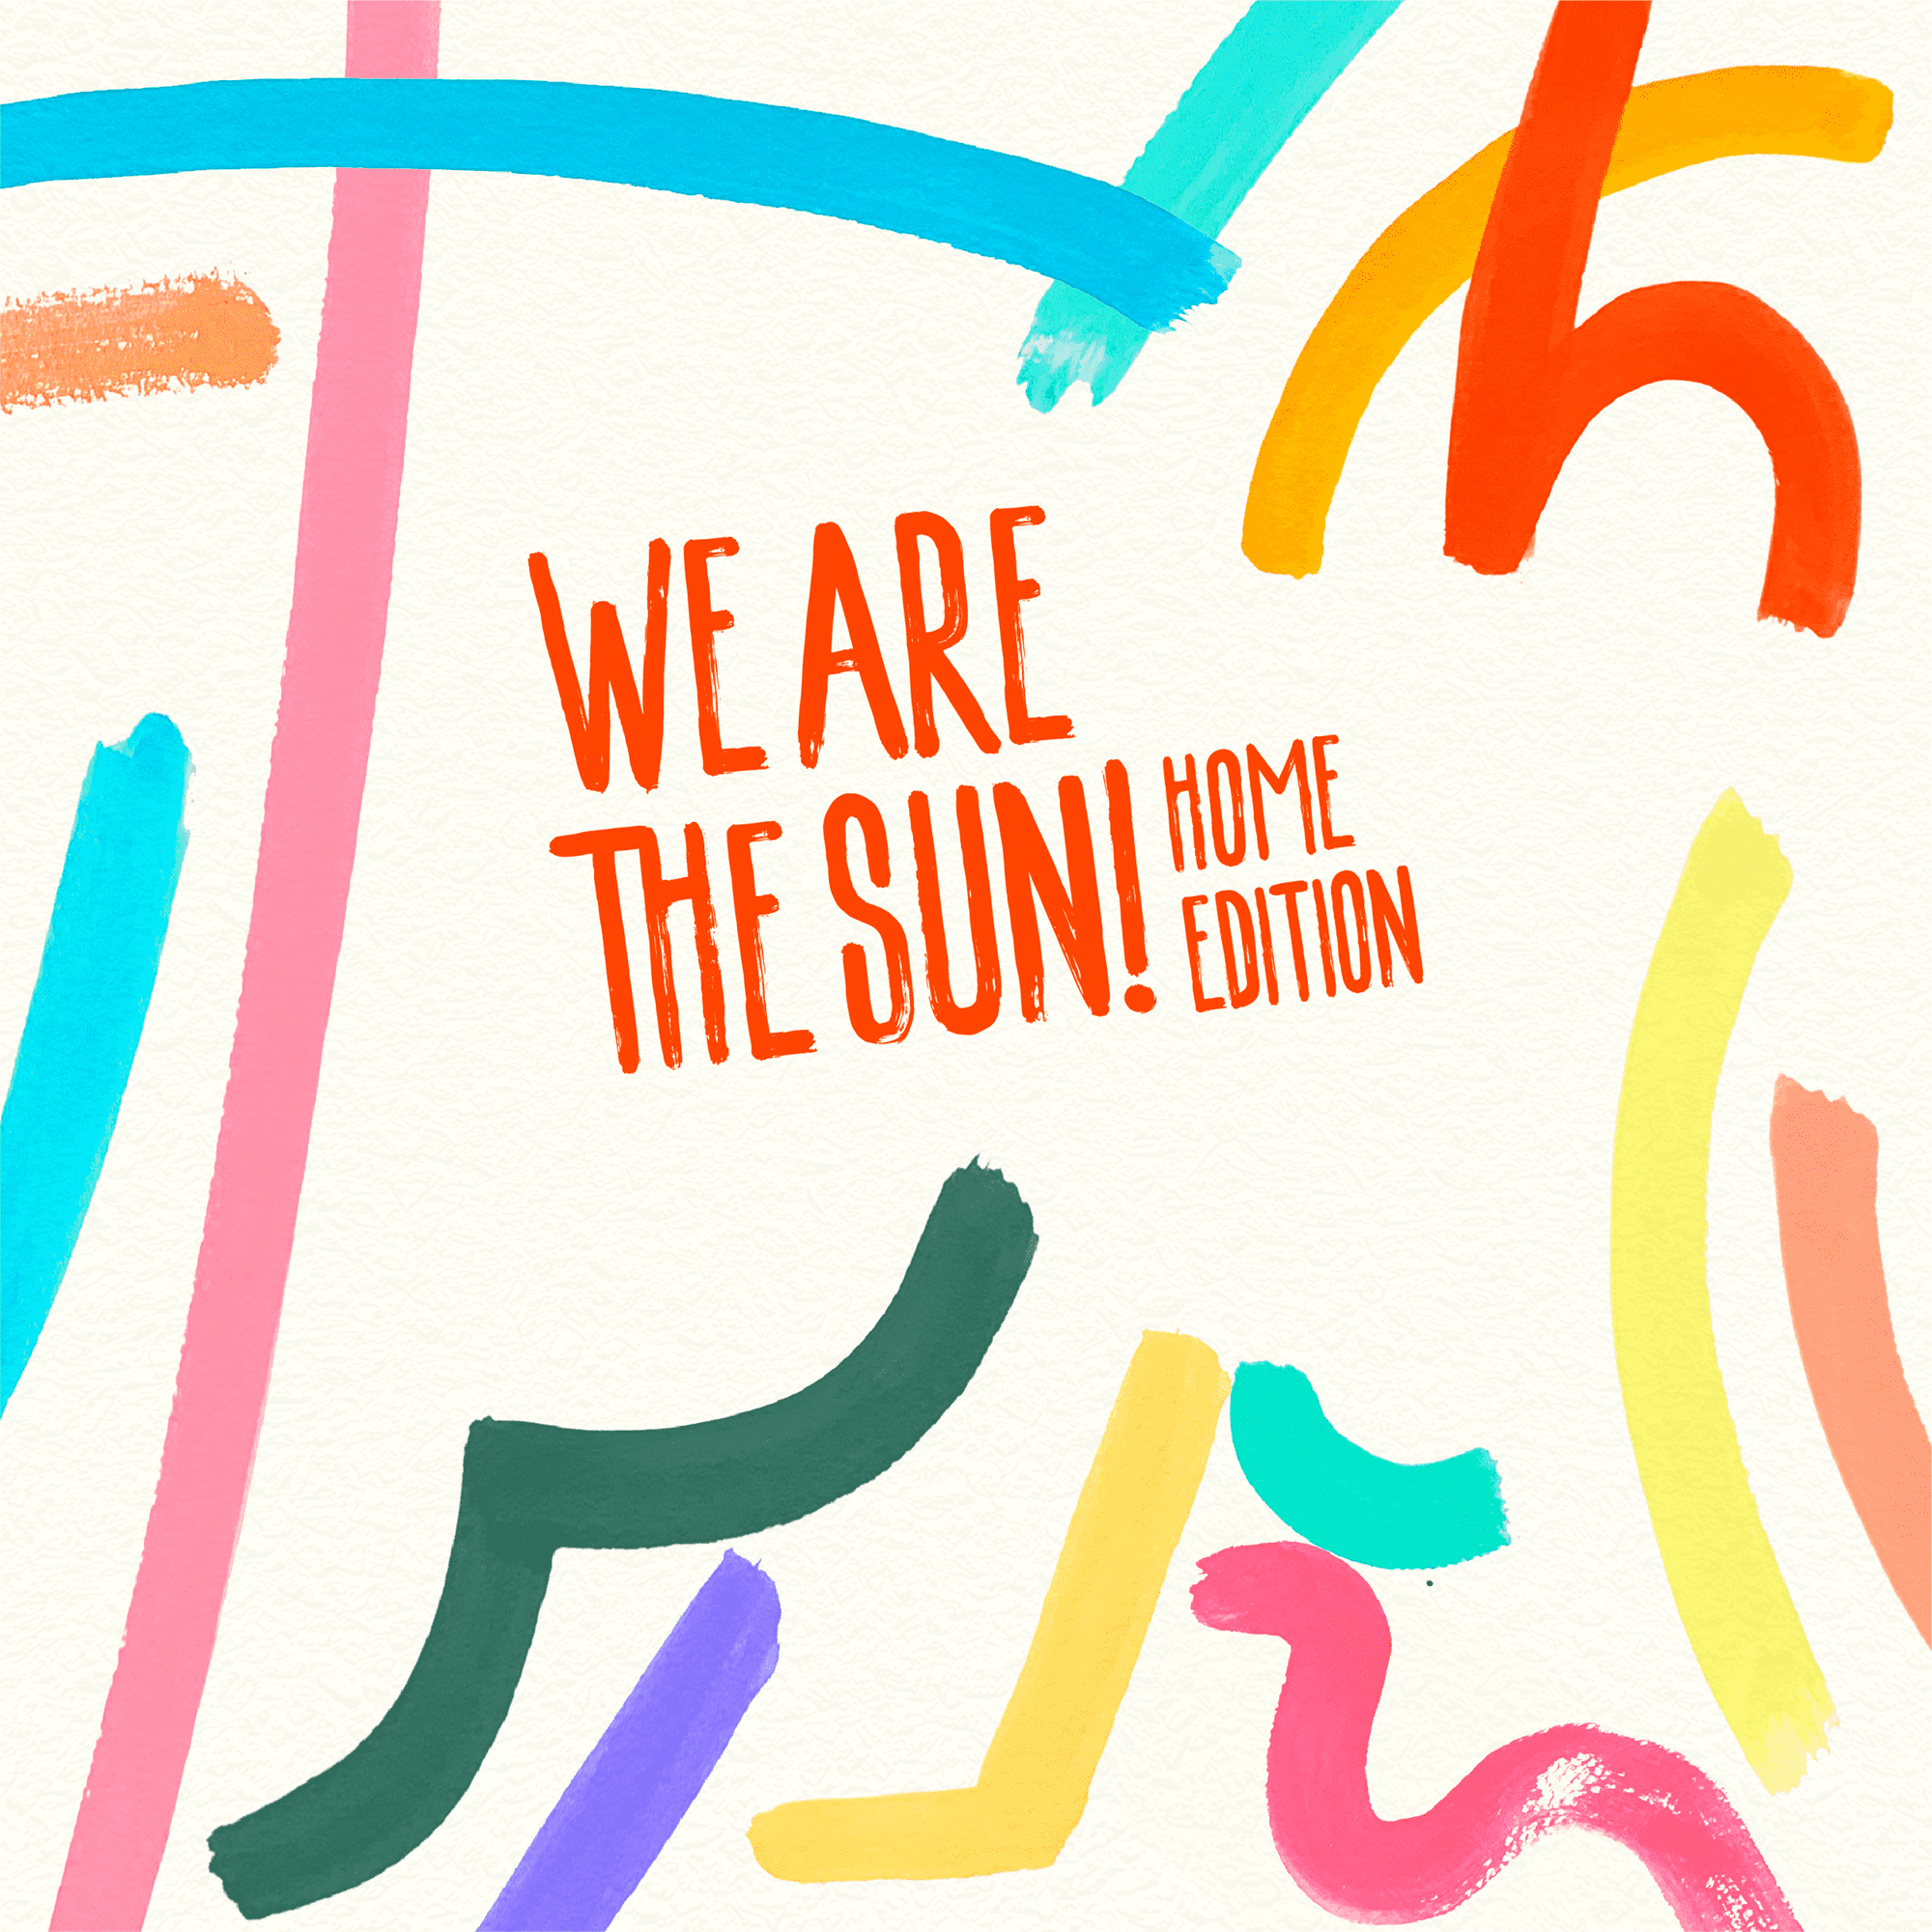 jacket of We Are the Sun! Home Edition